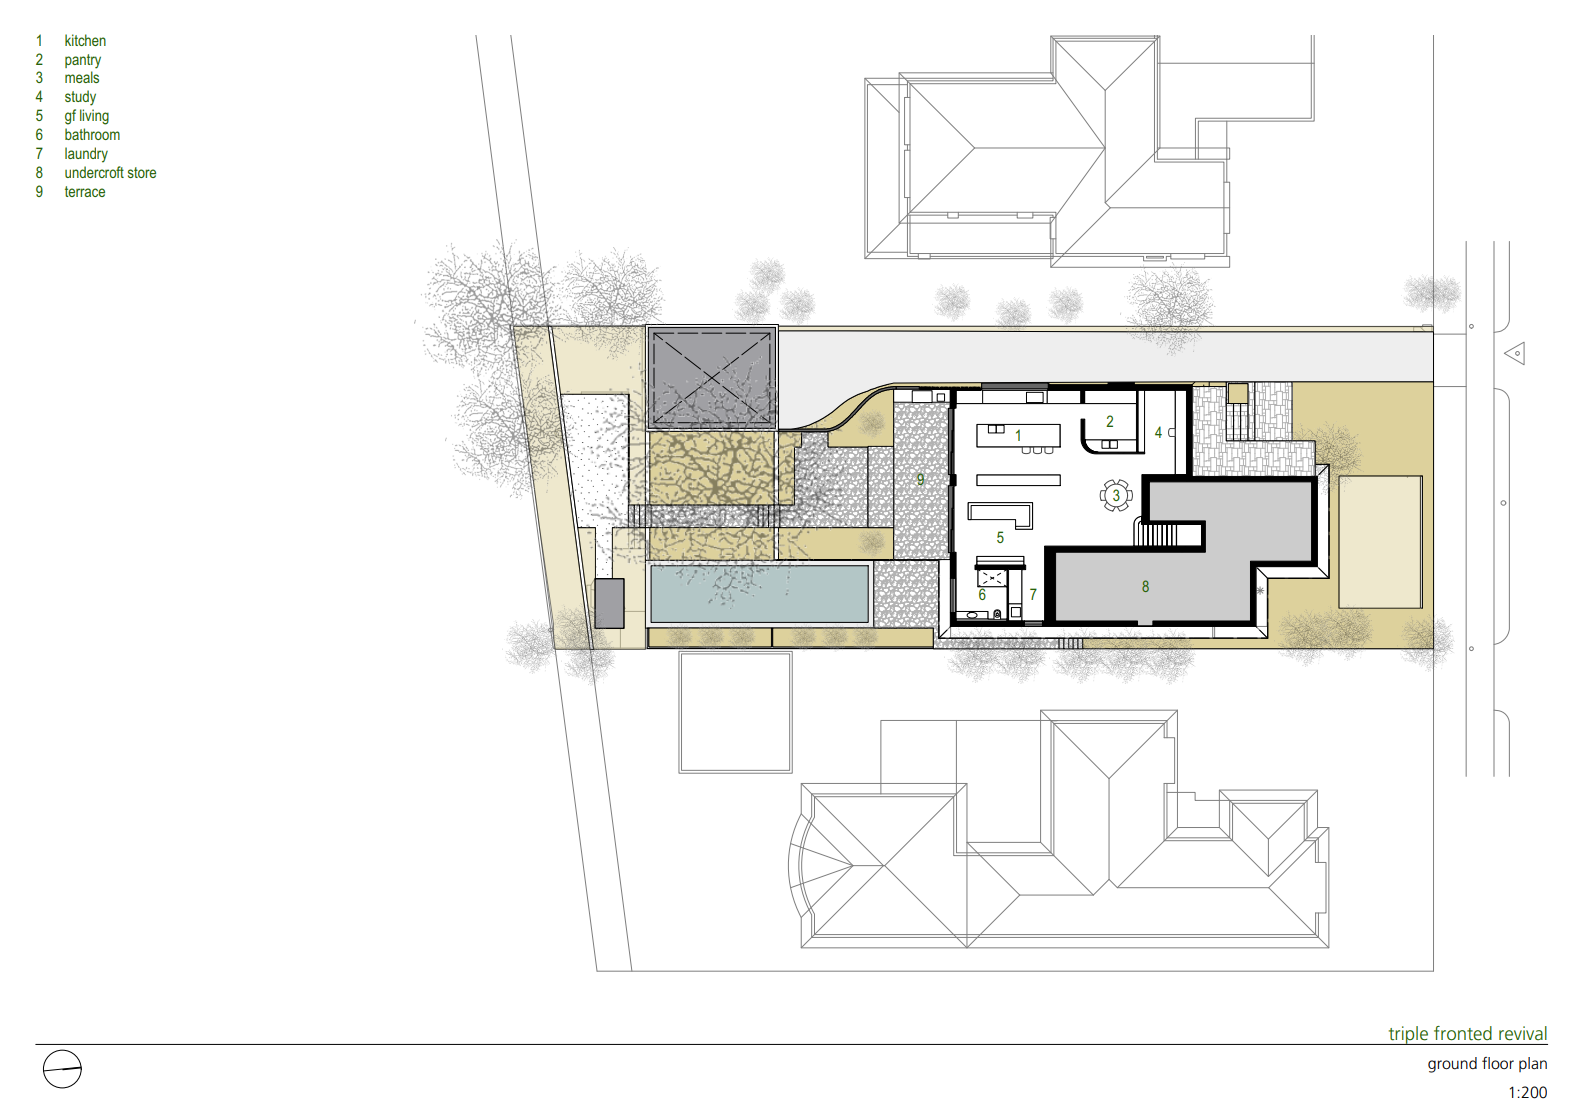 Triple Fronted Revival ground floor plan  Photo 14 of 15 in A Post-War Bungalow in Australia Gains an Indoor/Outdoor Entertainment Hub